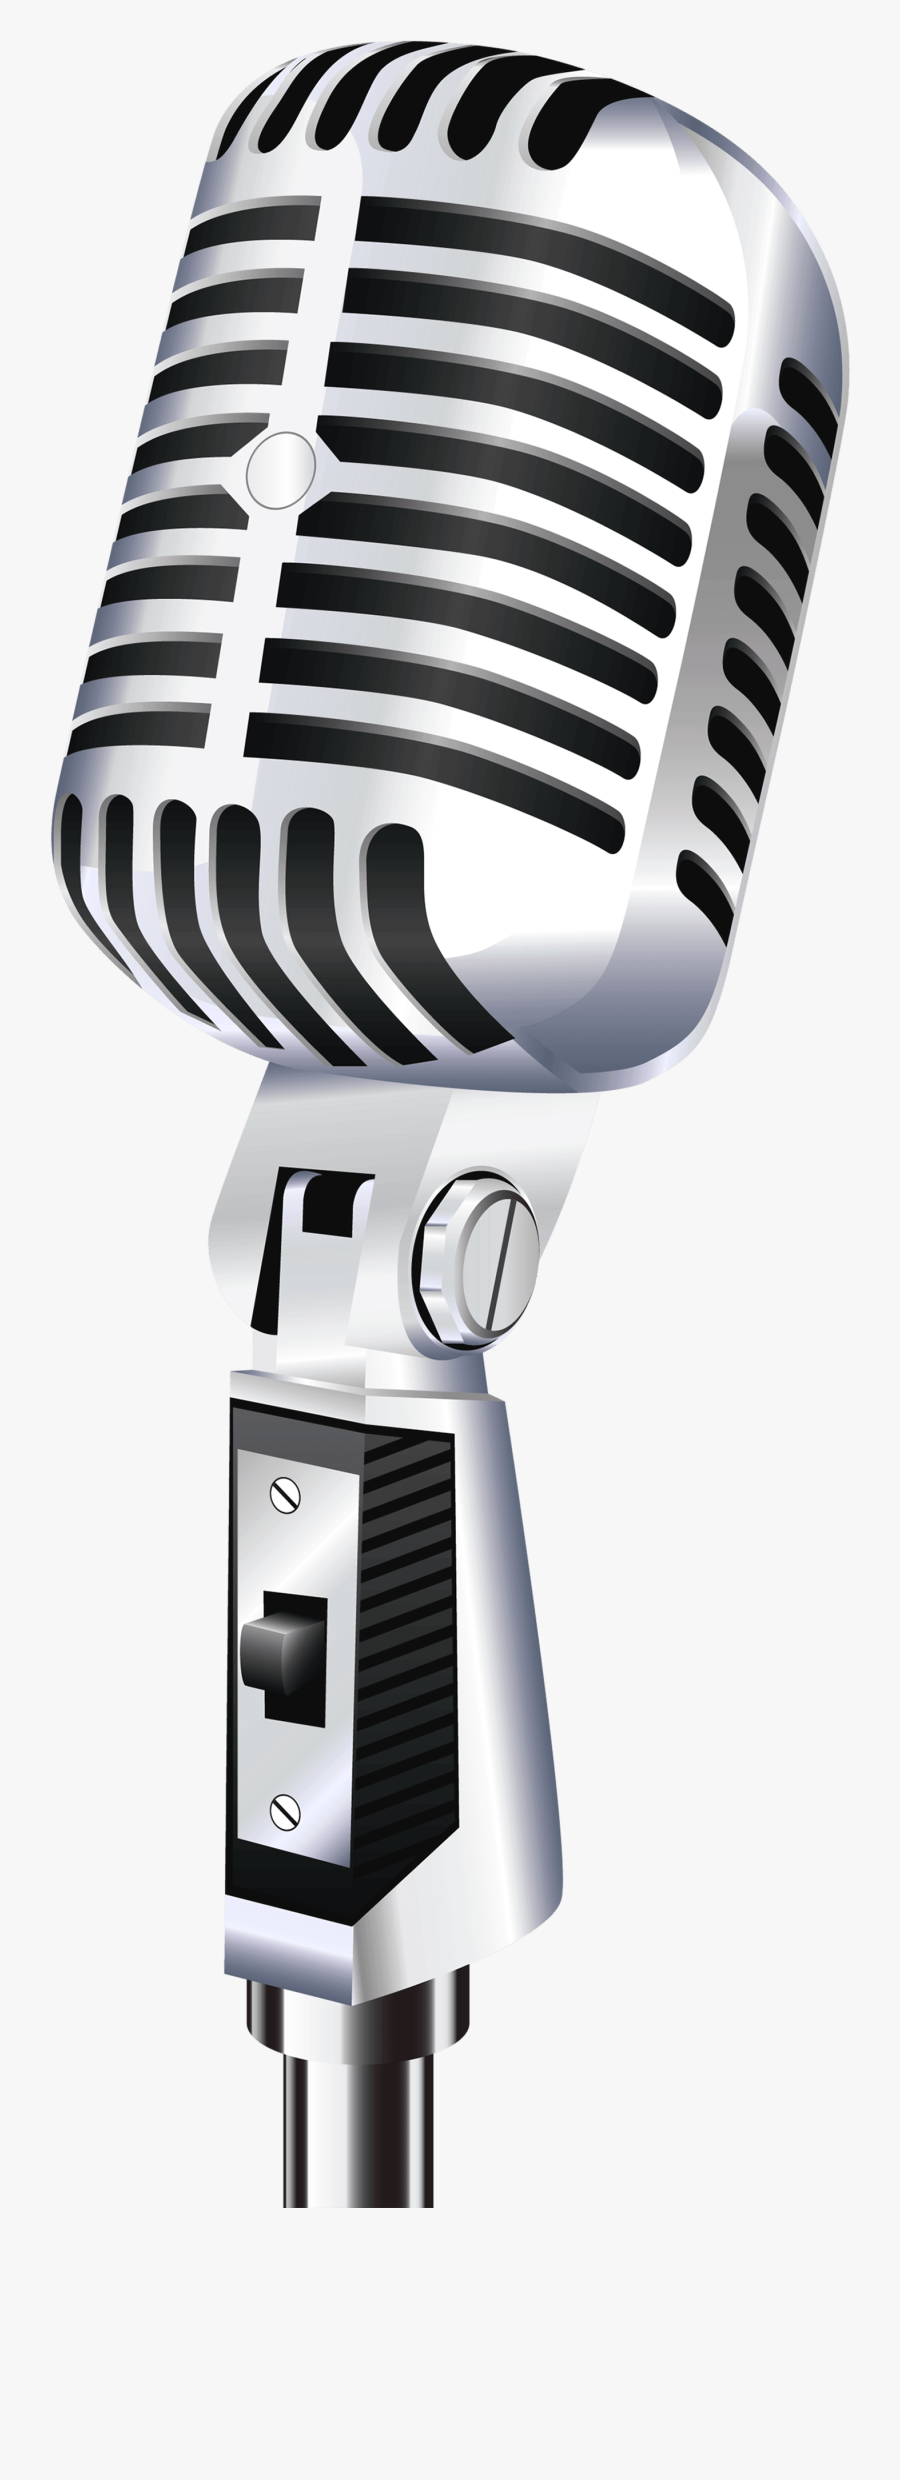 Transparent Microfone Png - Microphone Png, Transparent Clipart